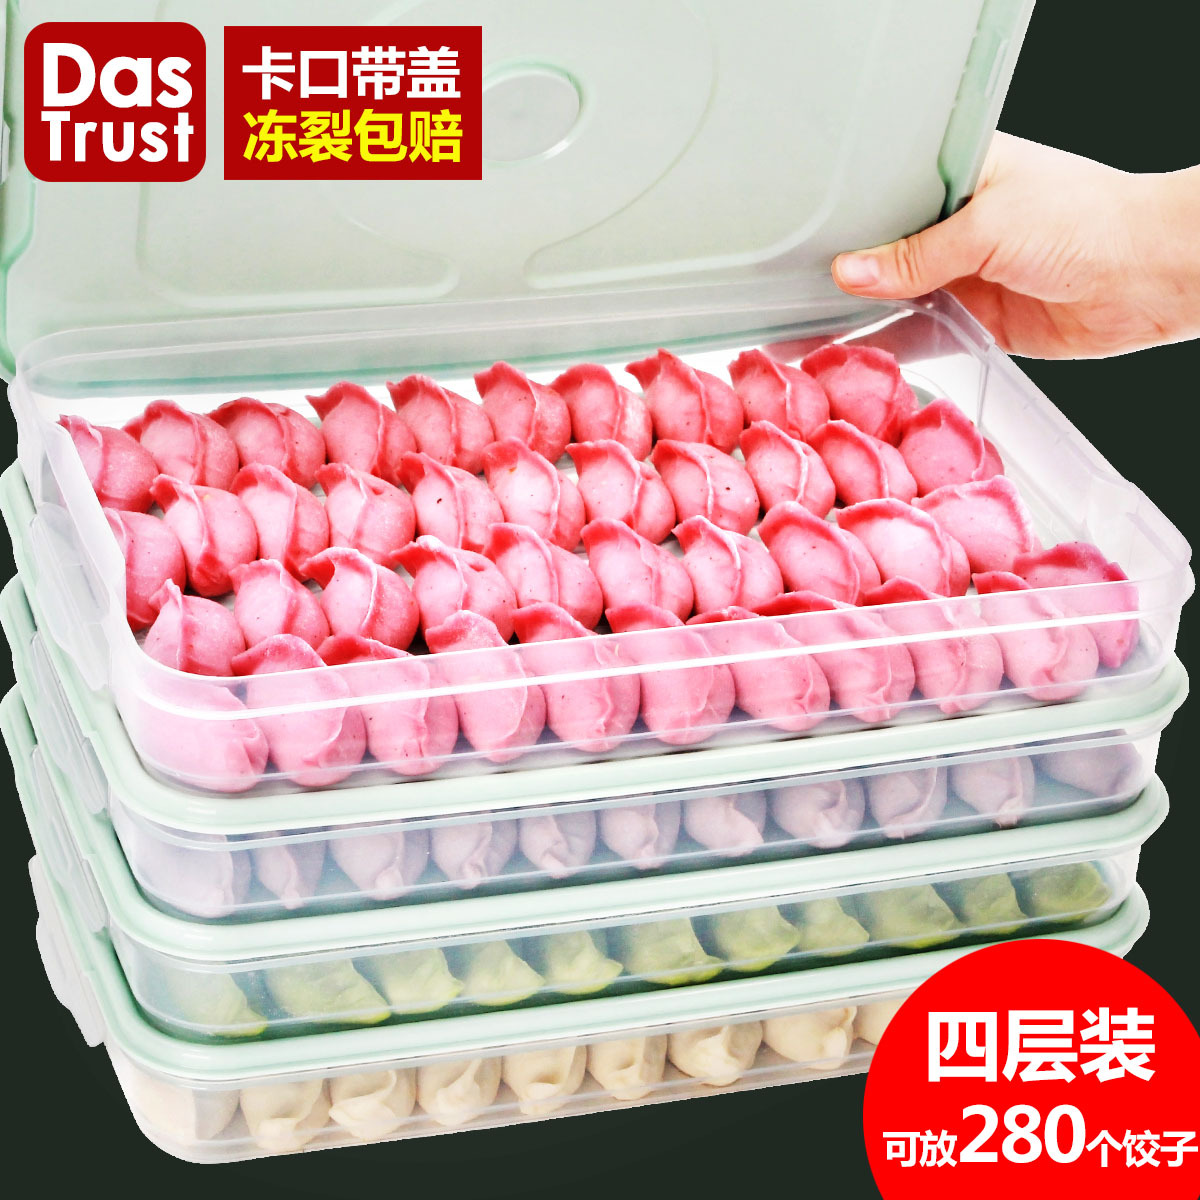 Jiao Zi He Frozen Dumplings Household-Put Dumplings Quick-frozen Box Refrigerator Freshness Storage Egg Wonton Box Large Size Mu